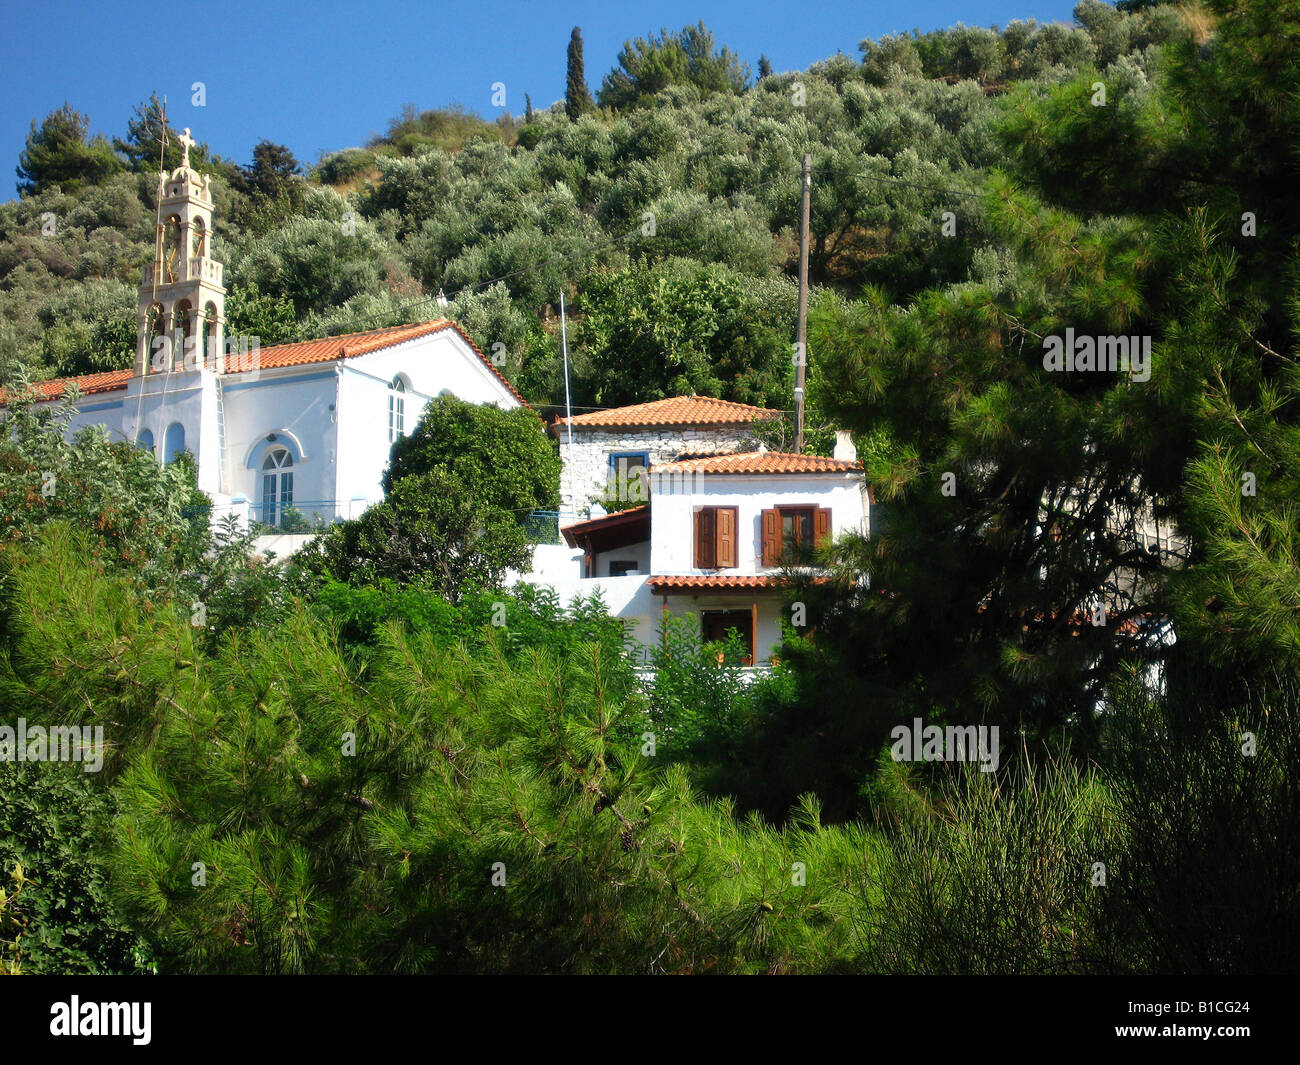 The church and houses of Ano Ag. Konstantinos on the island of Samos in Greece. - Stock Image